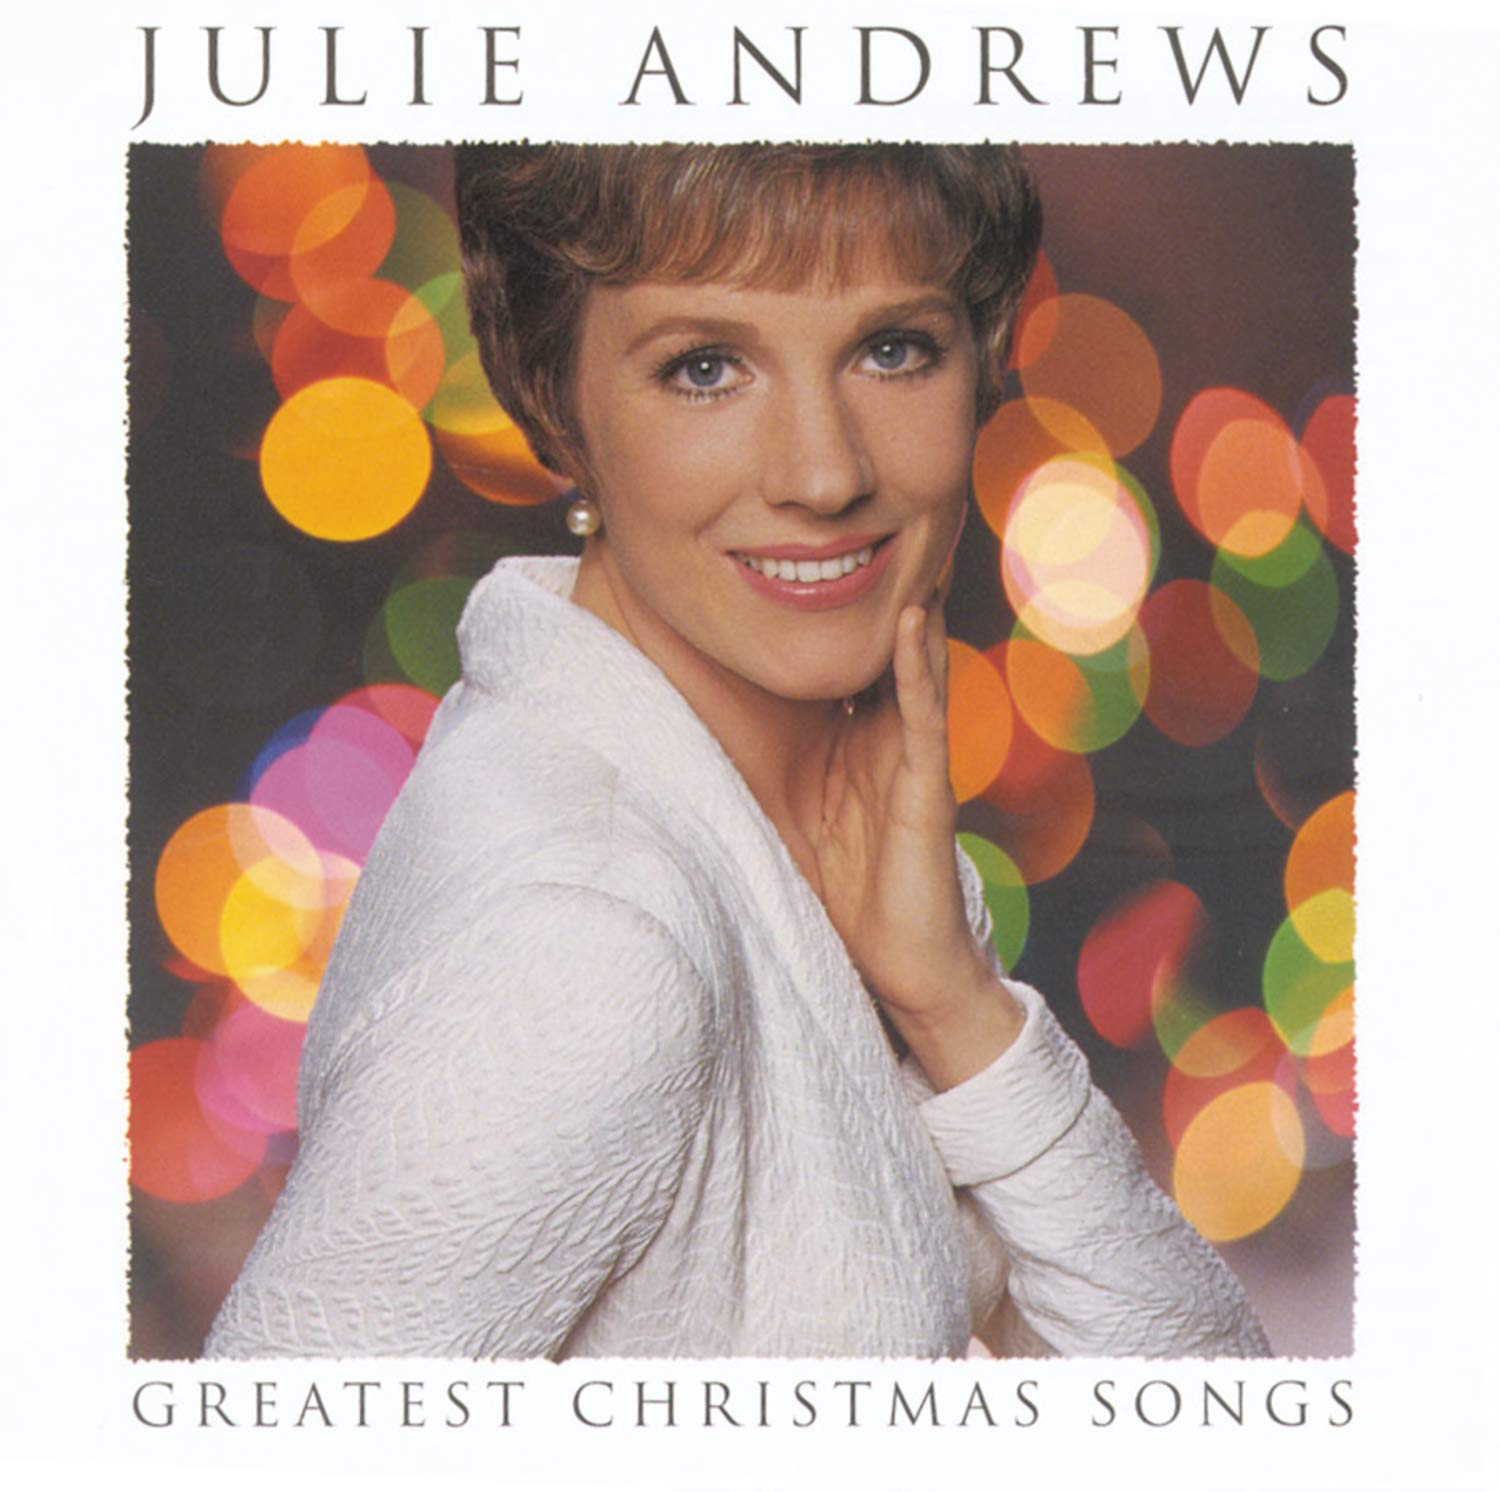 Julie Andrews - Greatest Christmas Songs - Amazon.com Music